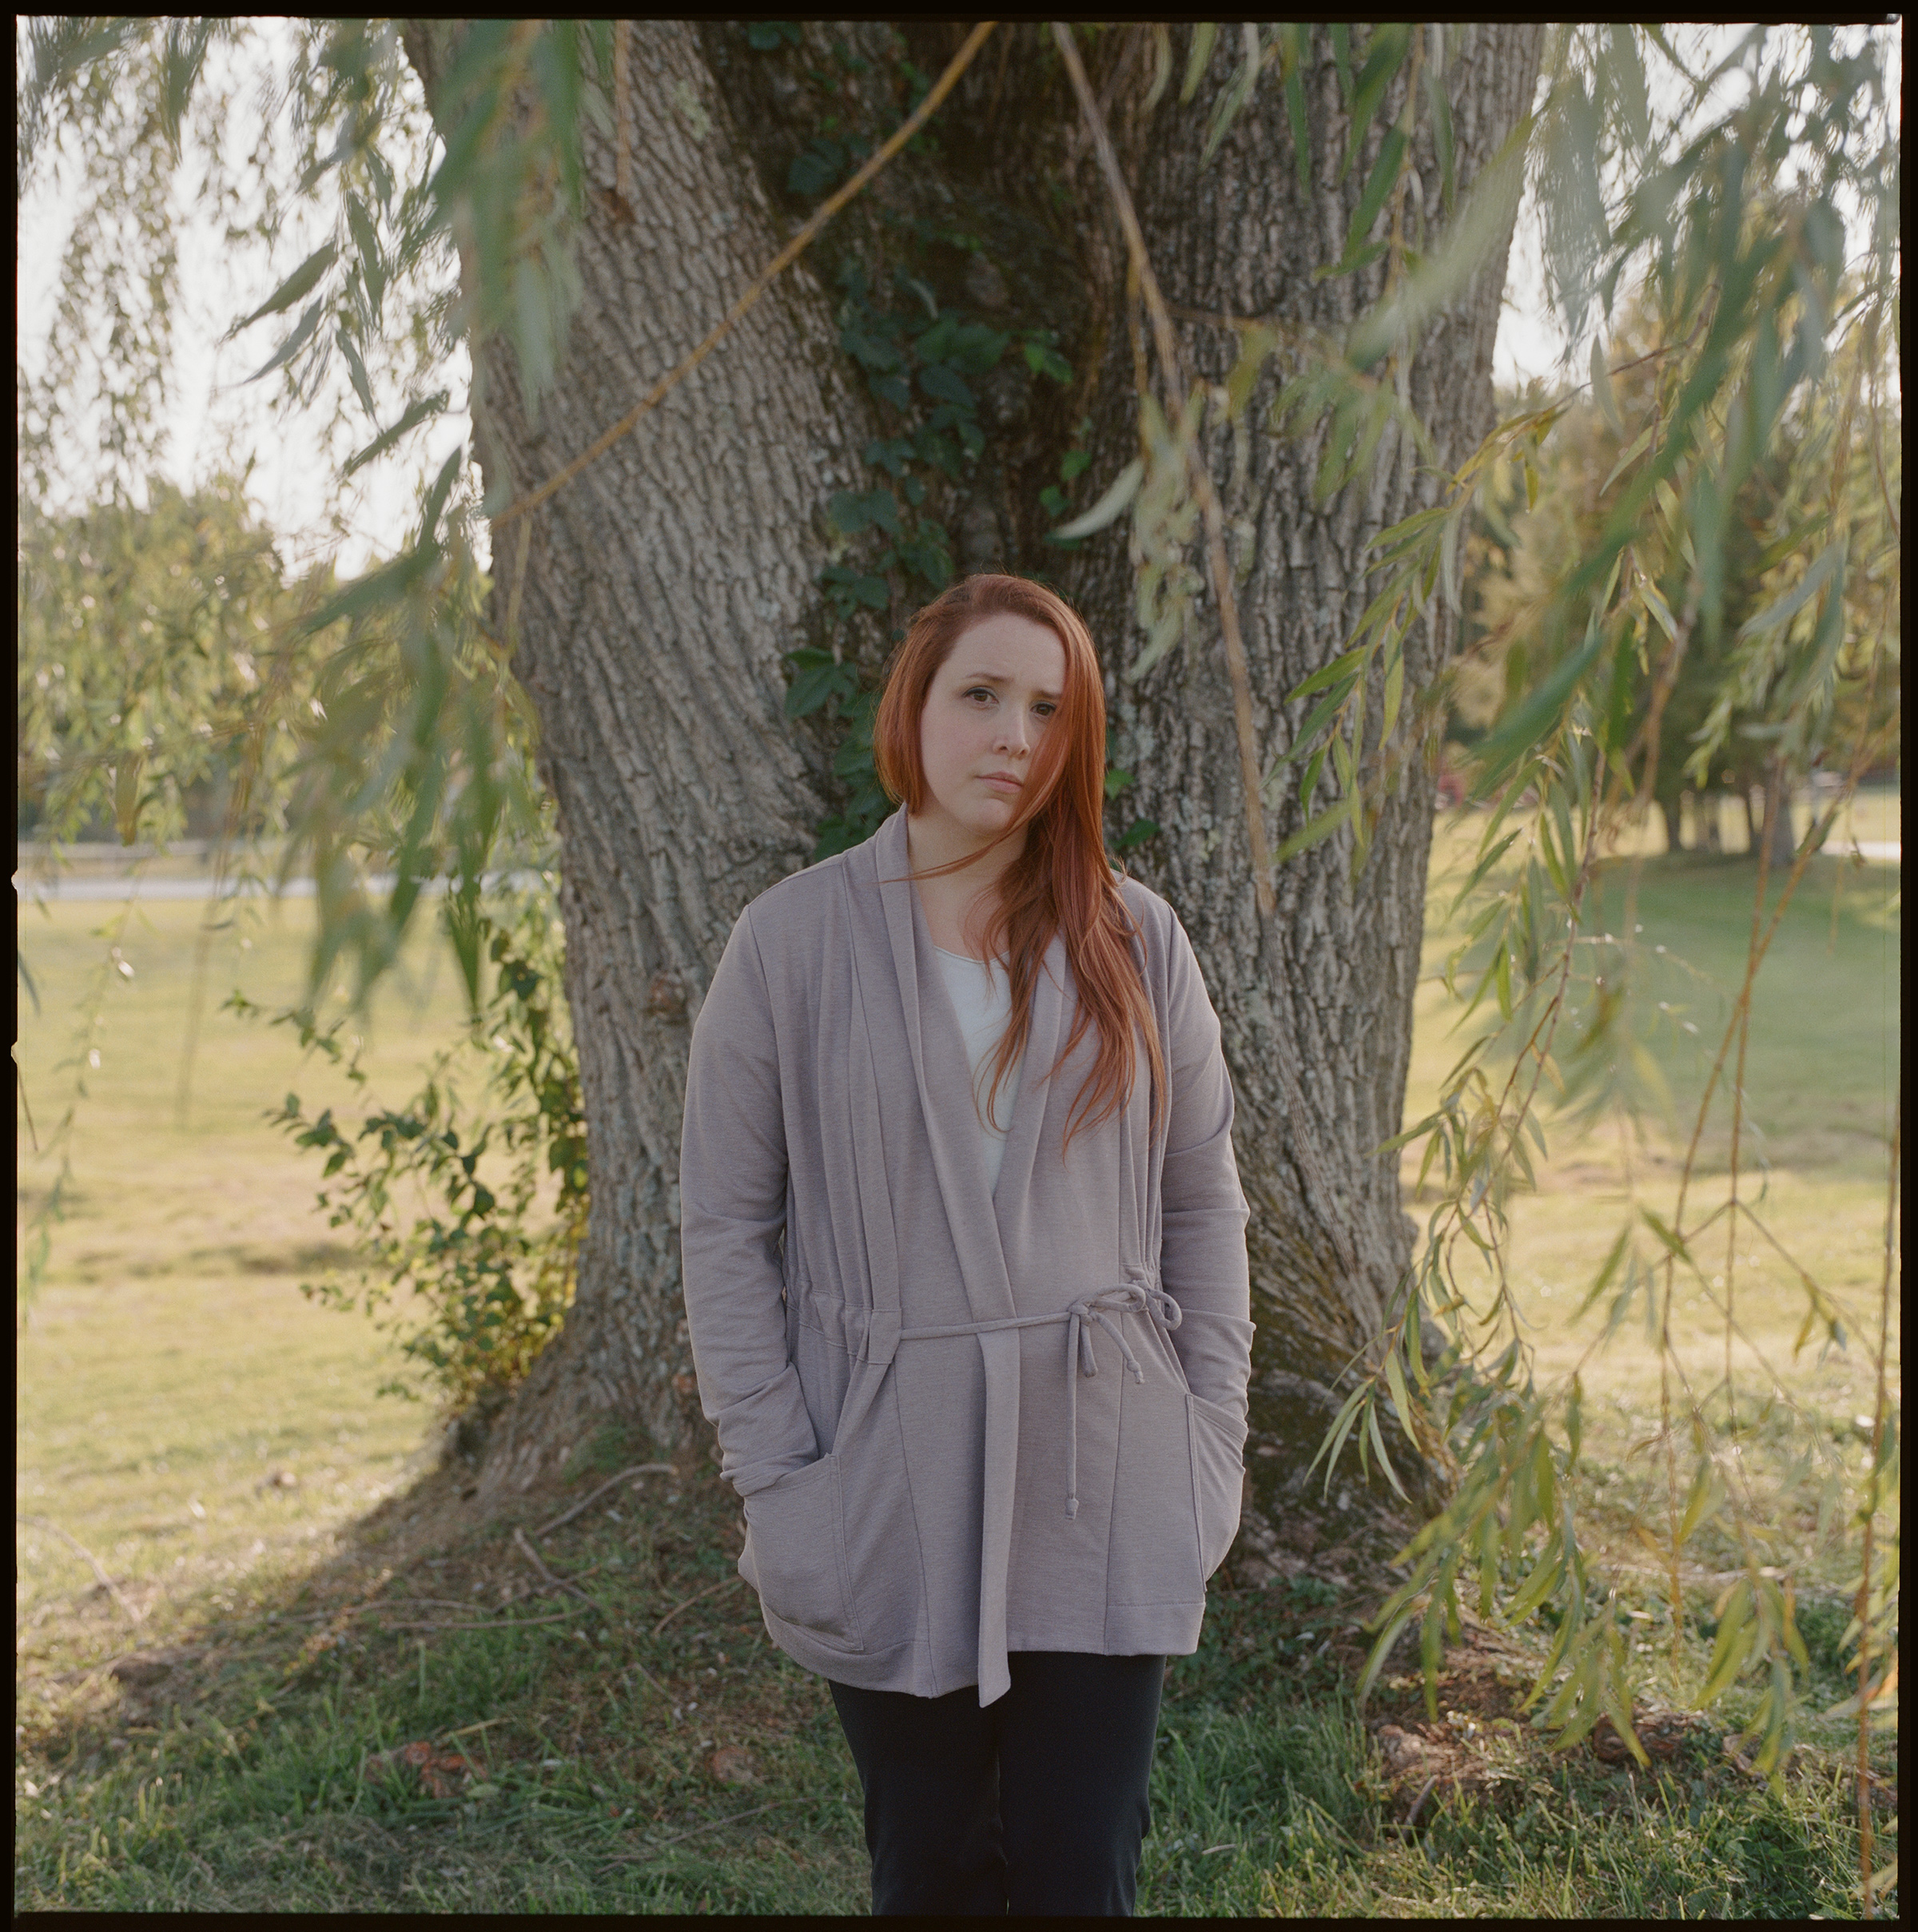 Dylan Farrow at a park in Bridgewater, Conn., on September 21